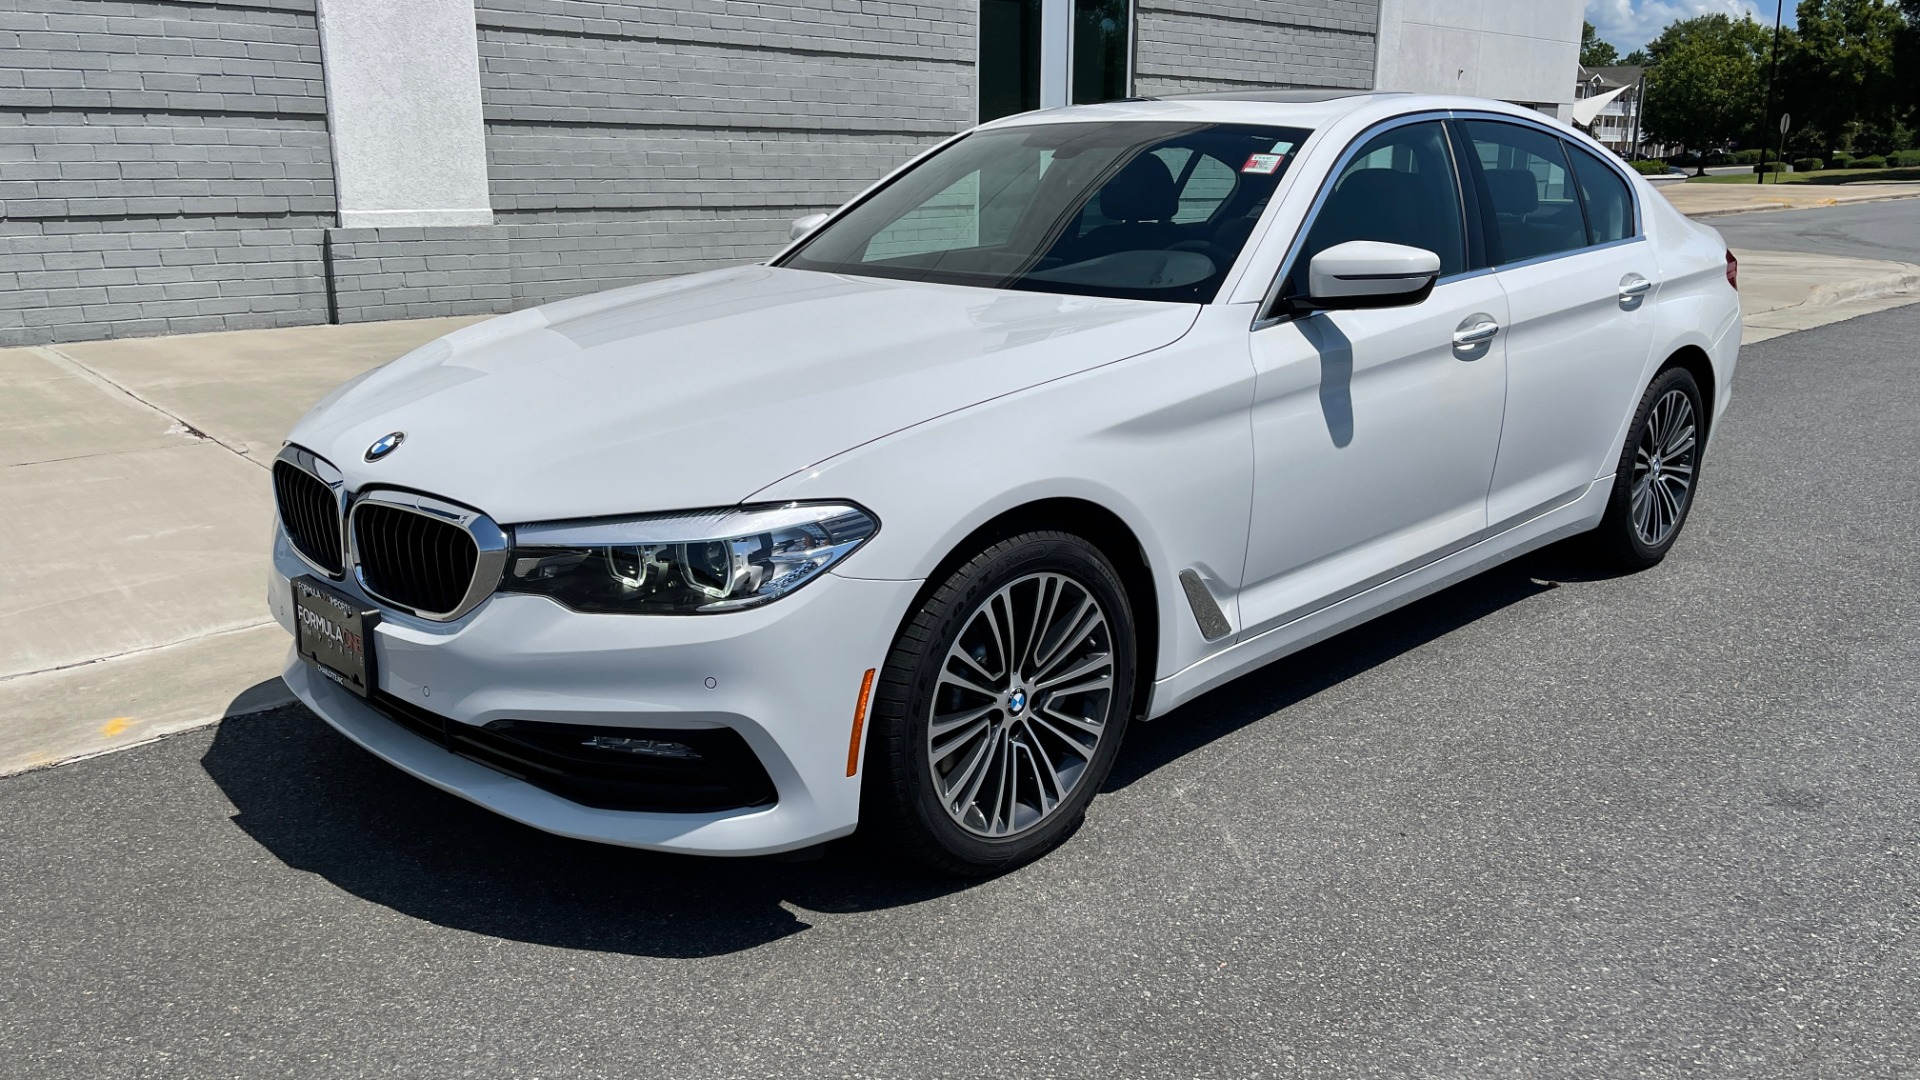 Used 2018 BMW 5 SERIES 540IXDRIVE PREMIUM / PARK ASSIST / KEYLESS ENTRY / SUNROOF / REARVIEW for sale $42,995 at Formula Imports in Charlotte NC 28227 3